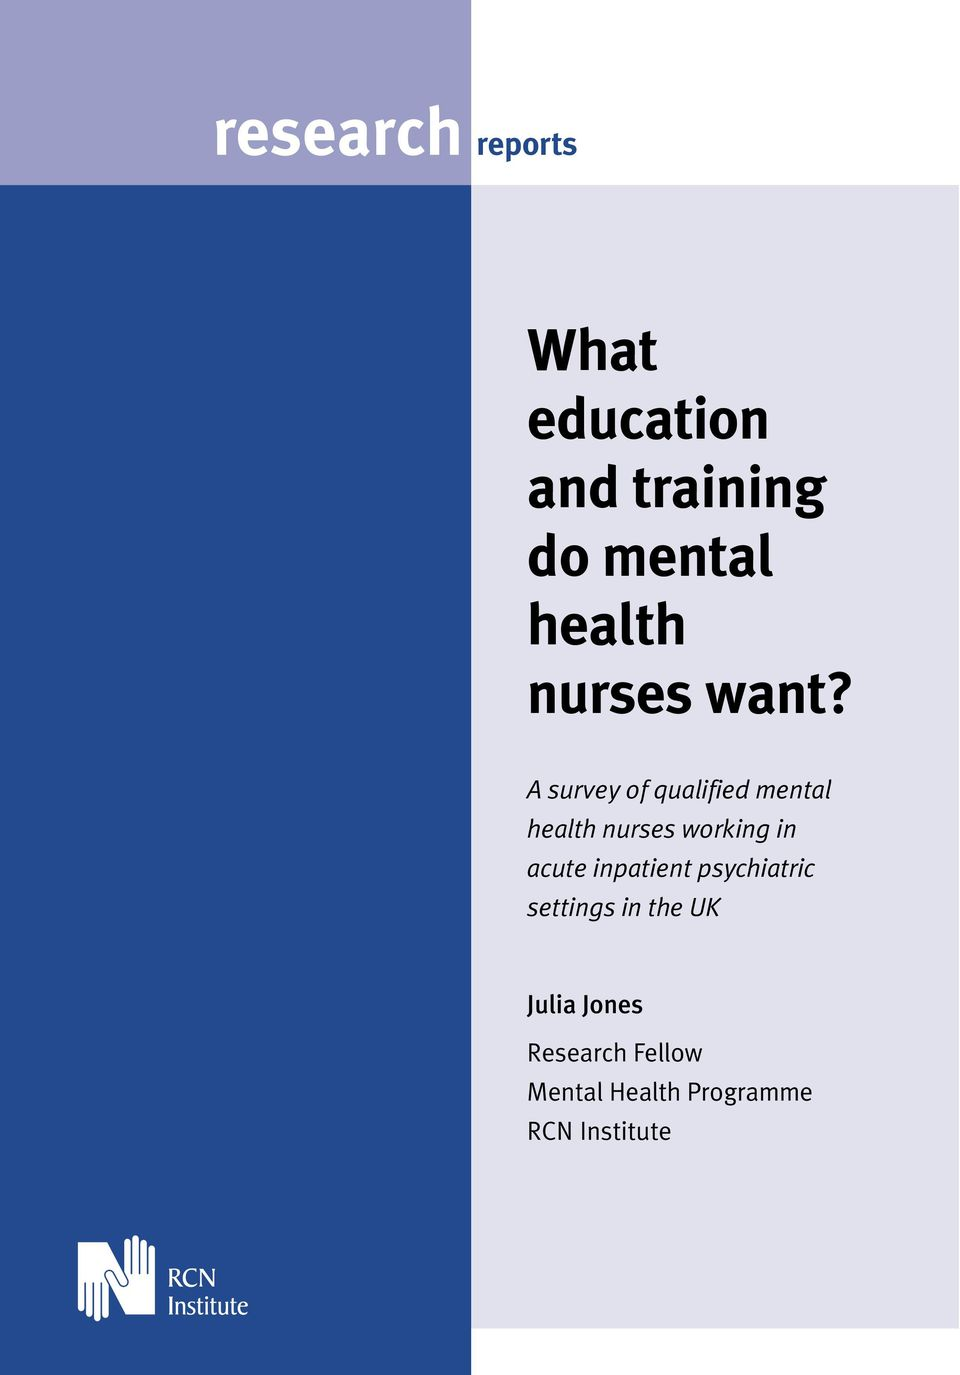 A survey of qualified mental health nurses working in acute inpatient